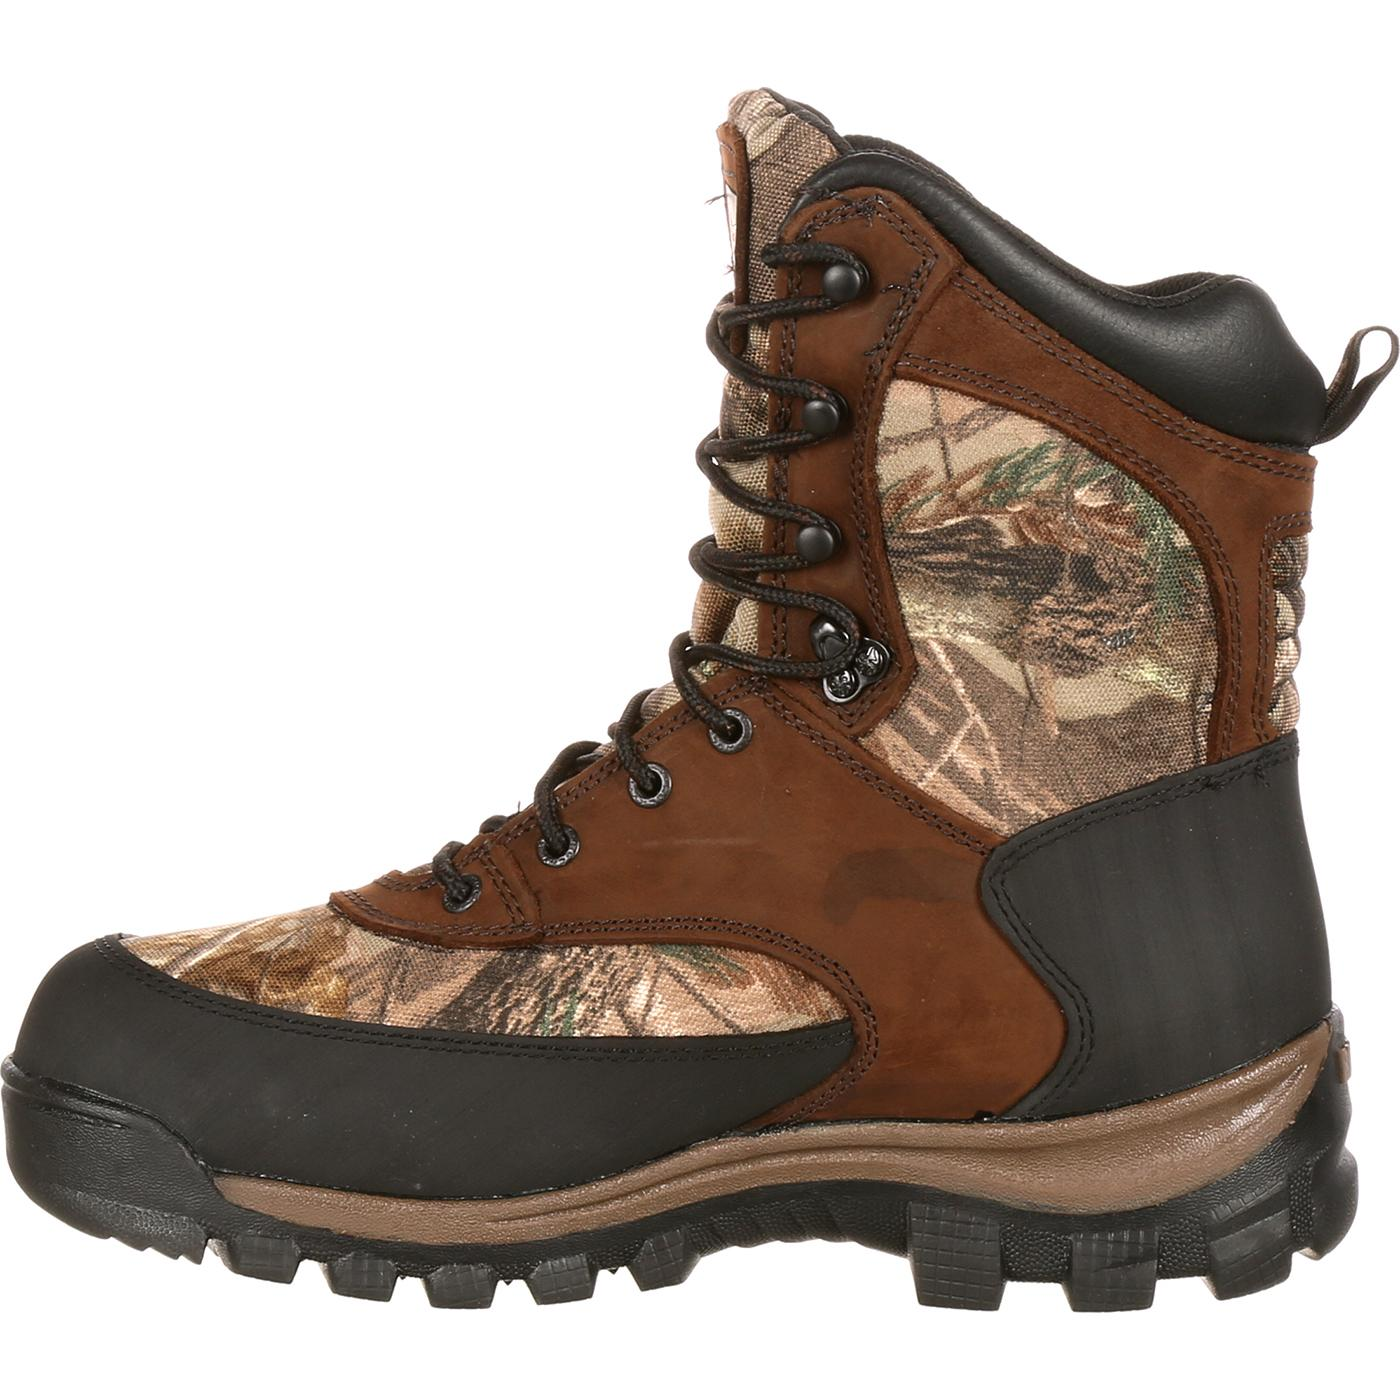 Rocky Core Waterproof Insulated Camo Outdoor Boots, #4754